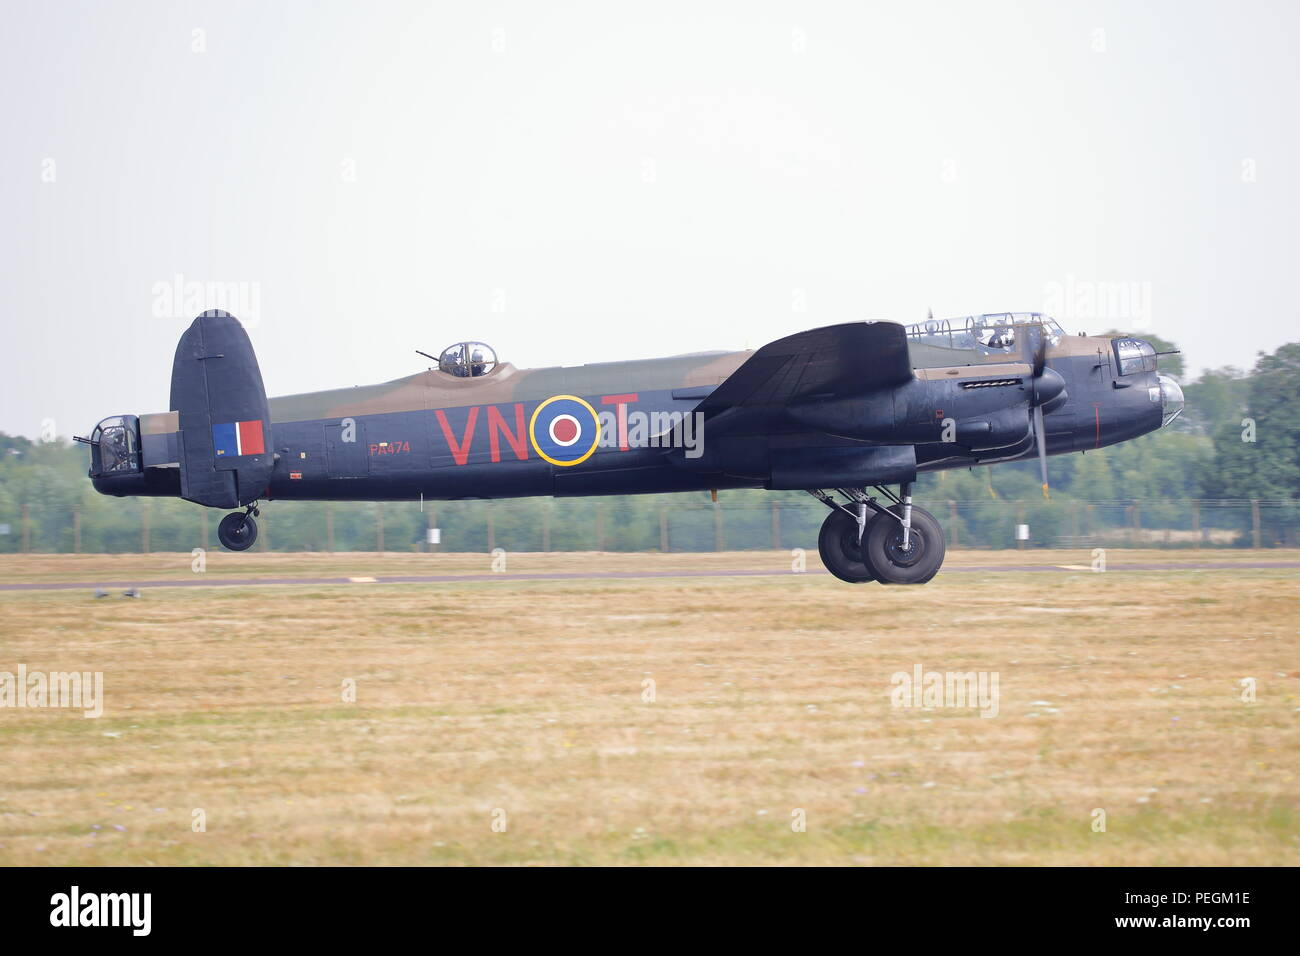 The only airworthy Avro Lancaster bomber in Europe at the RIAT 2018 at RAF Fairford, UK - Stock Image